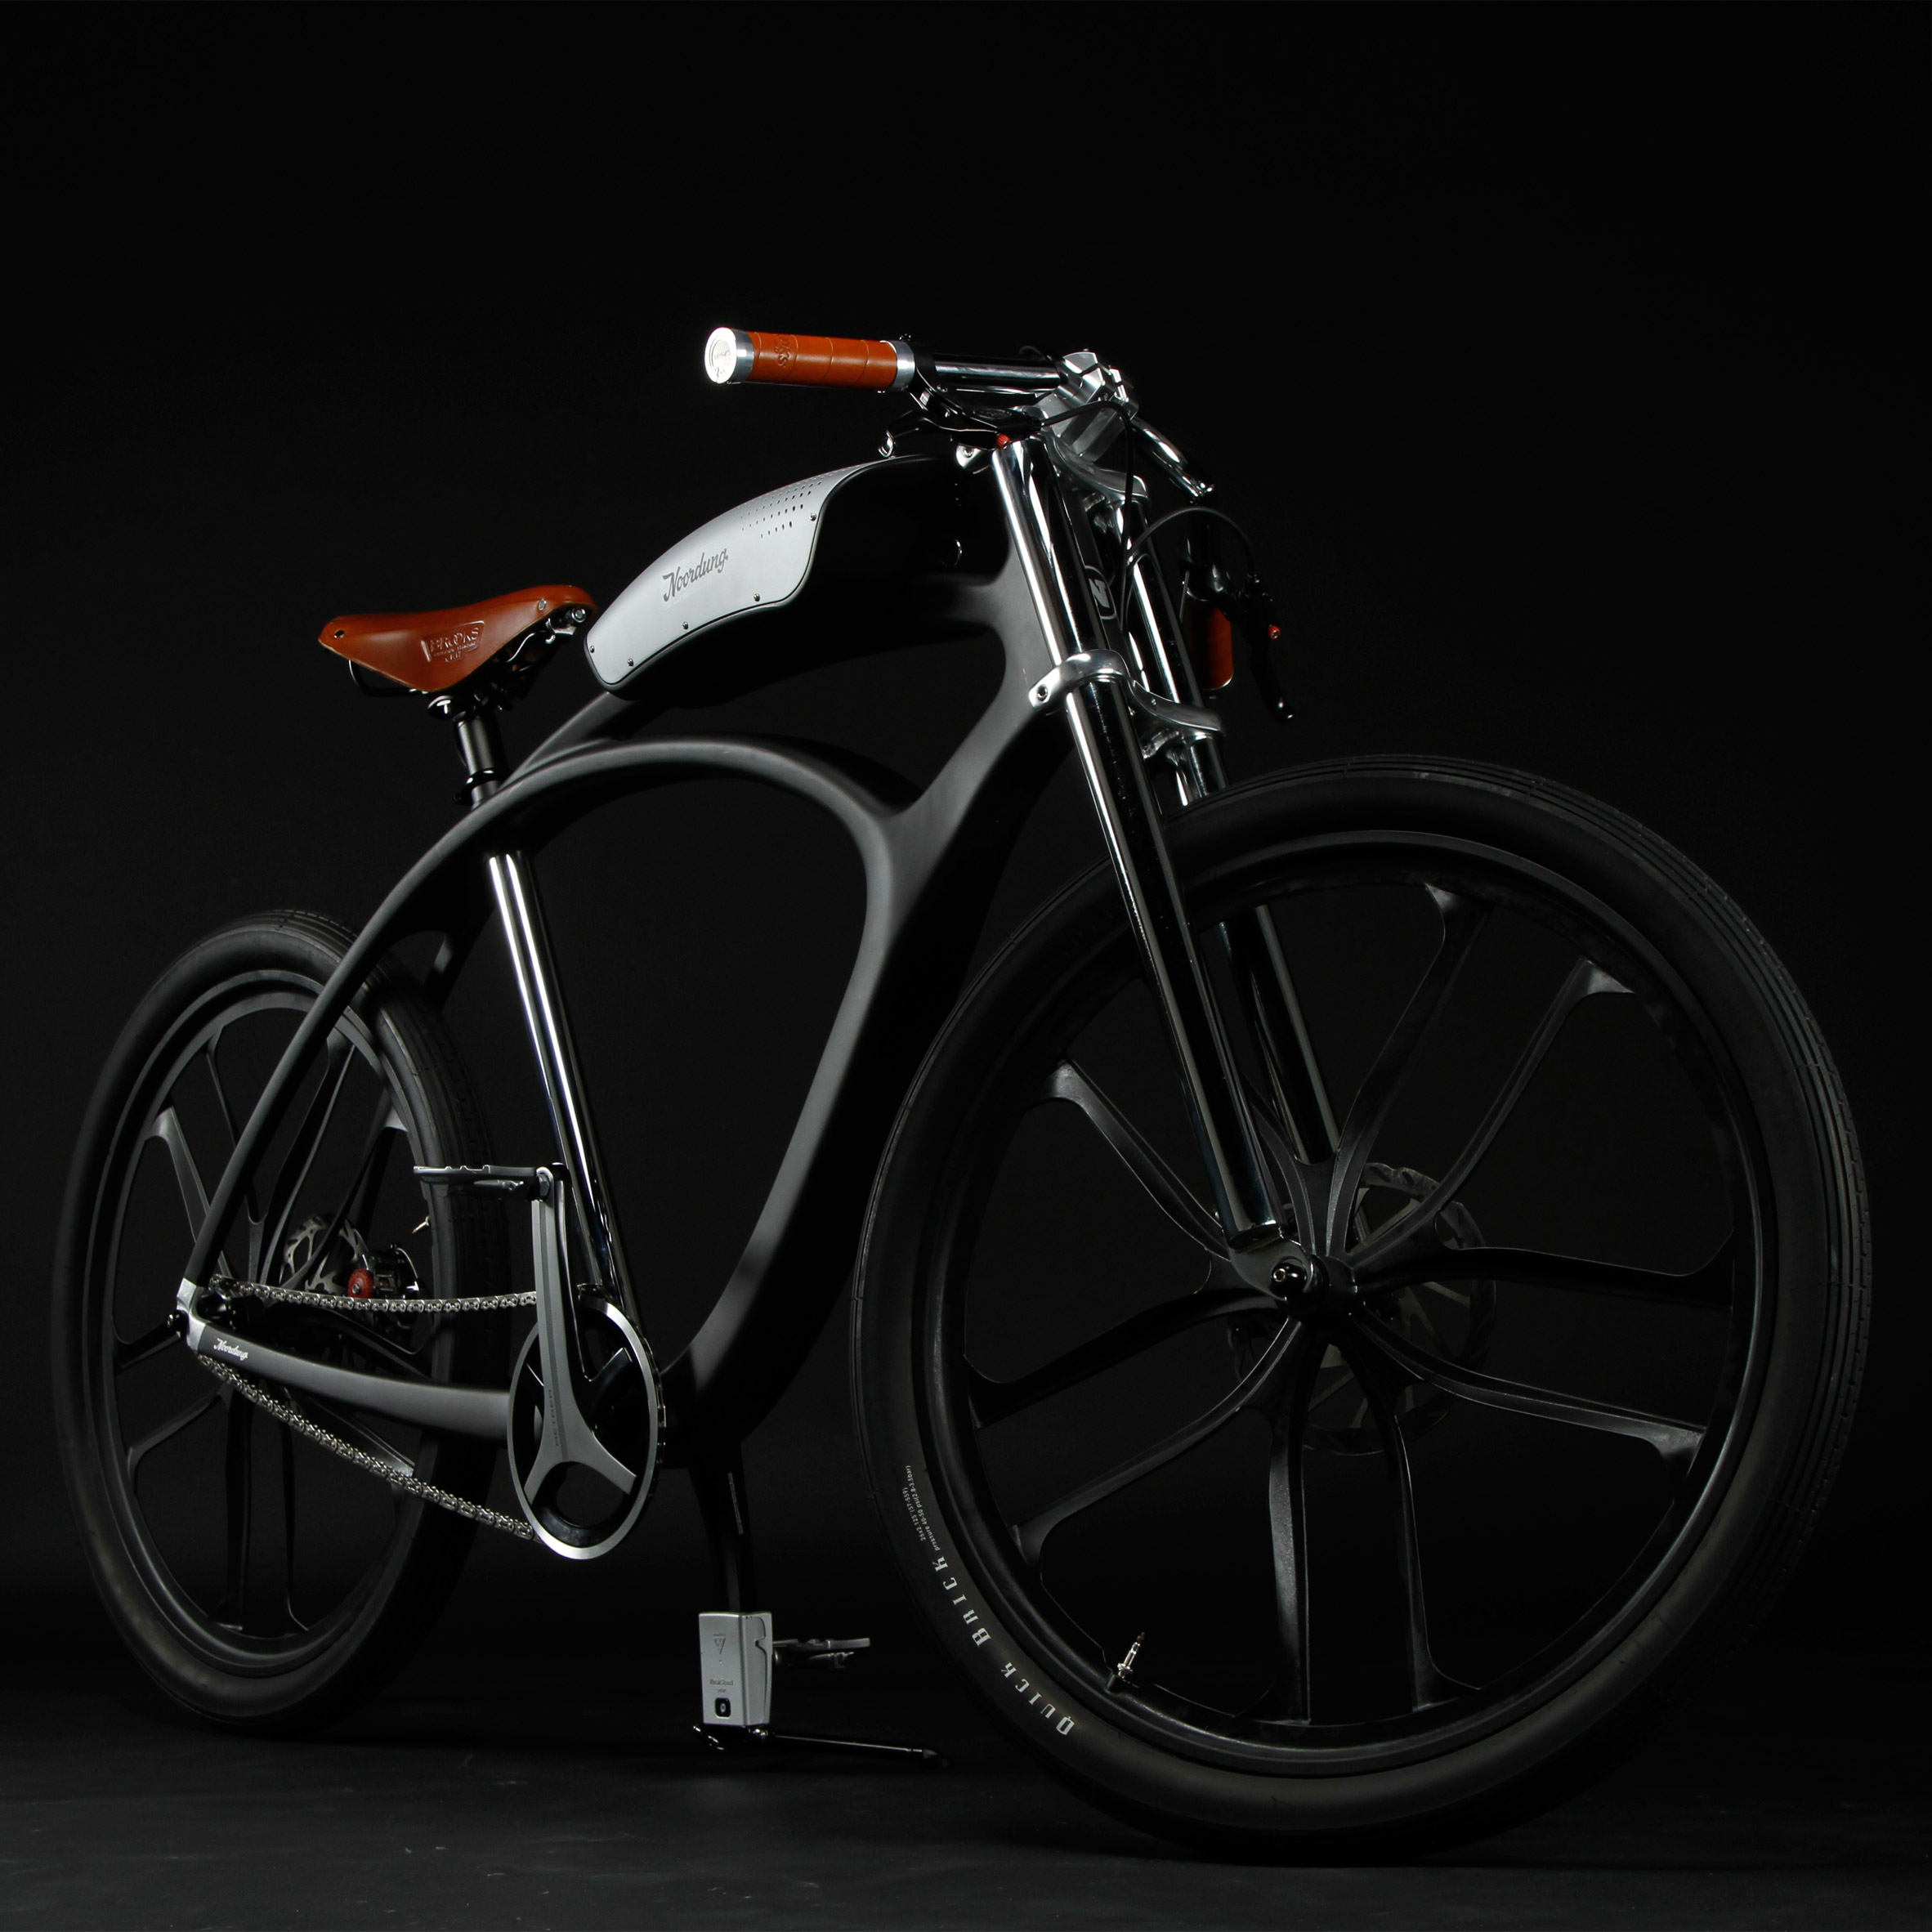 Noordung's Angel Edition bike has a battery that doubles as a boombox